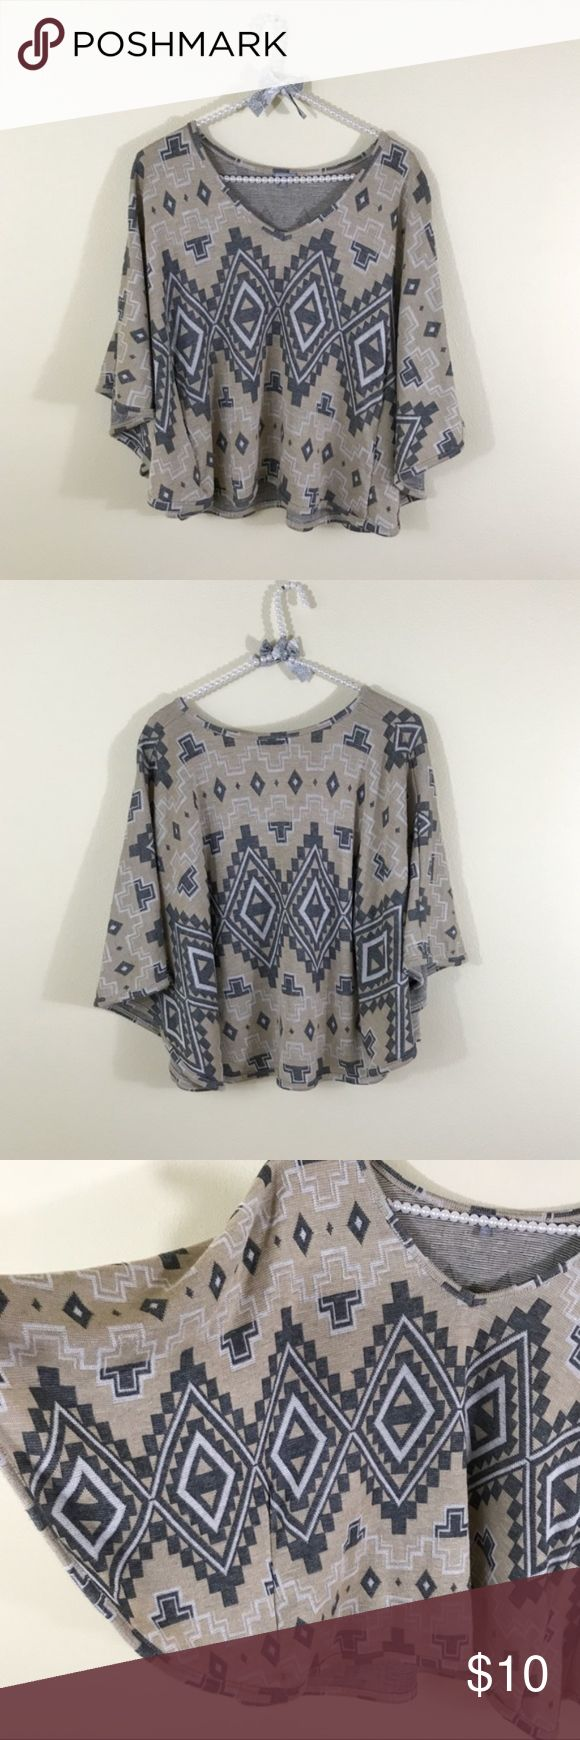 Charlotte Russe Aztec Tribal Batwing Top A couple small pulls. Price firm unless bundled. Charlotte Russe Tops